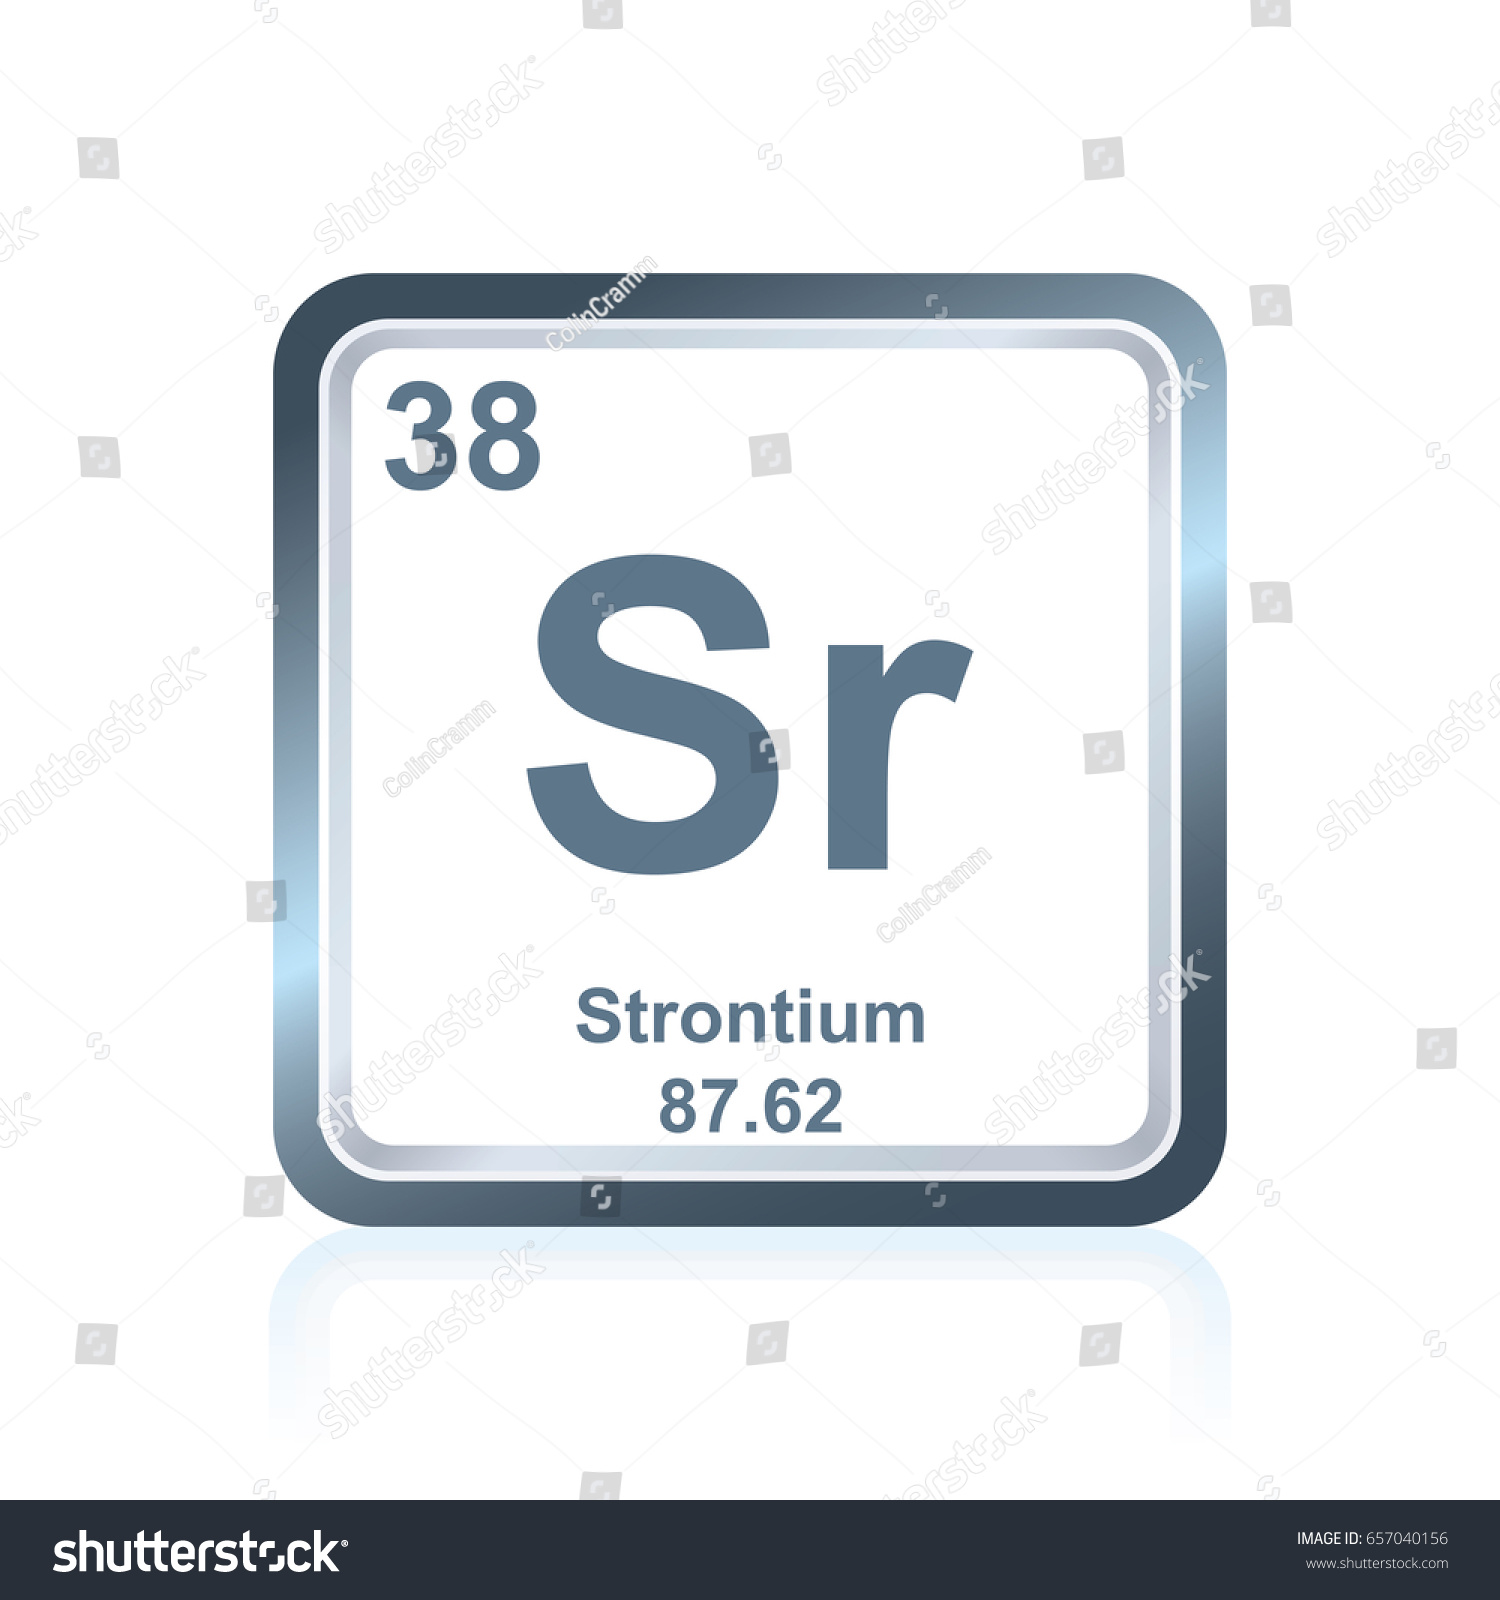 Chemical symbol of strontium image collections symbol and sign ideas symbol chemical element strontium seen on stock vector 657040156 symbol of chemical element strontium as seen biocorpaavc